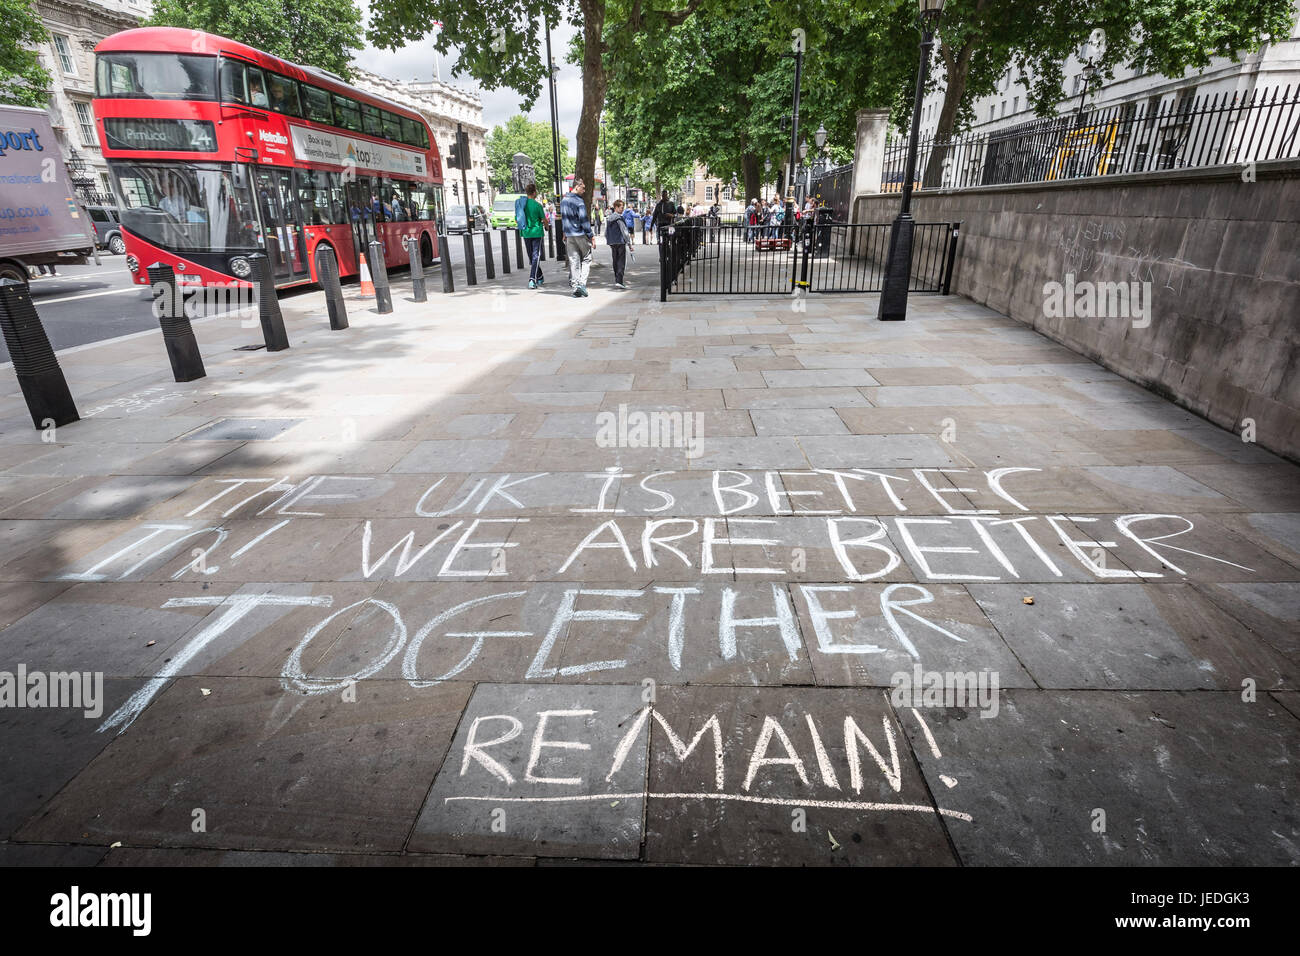 London, UK. 24th June, 2017. Pro-Remain/Anti-Brexit chalking message is chalked on the pavement opposite Downing - Stock Image